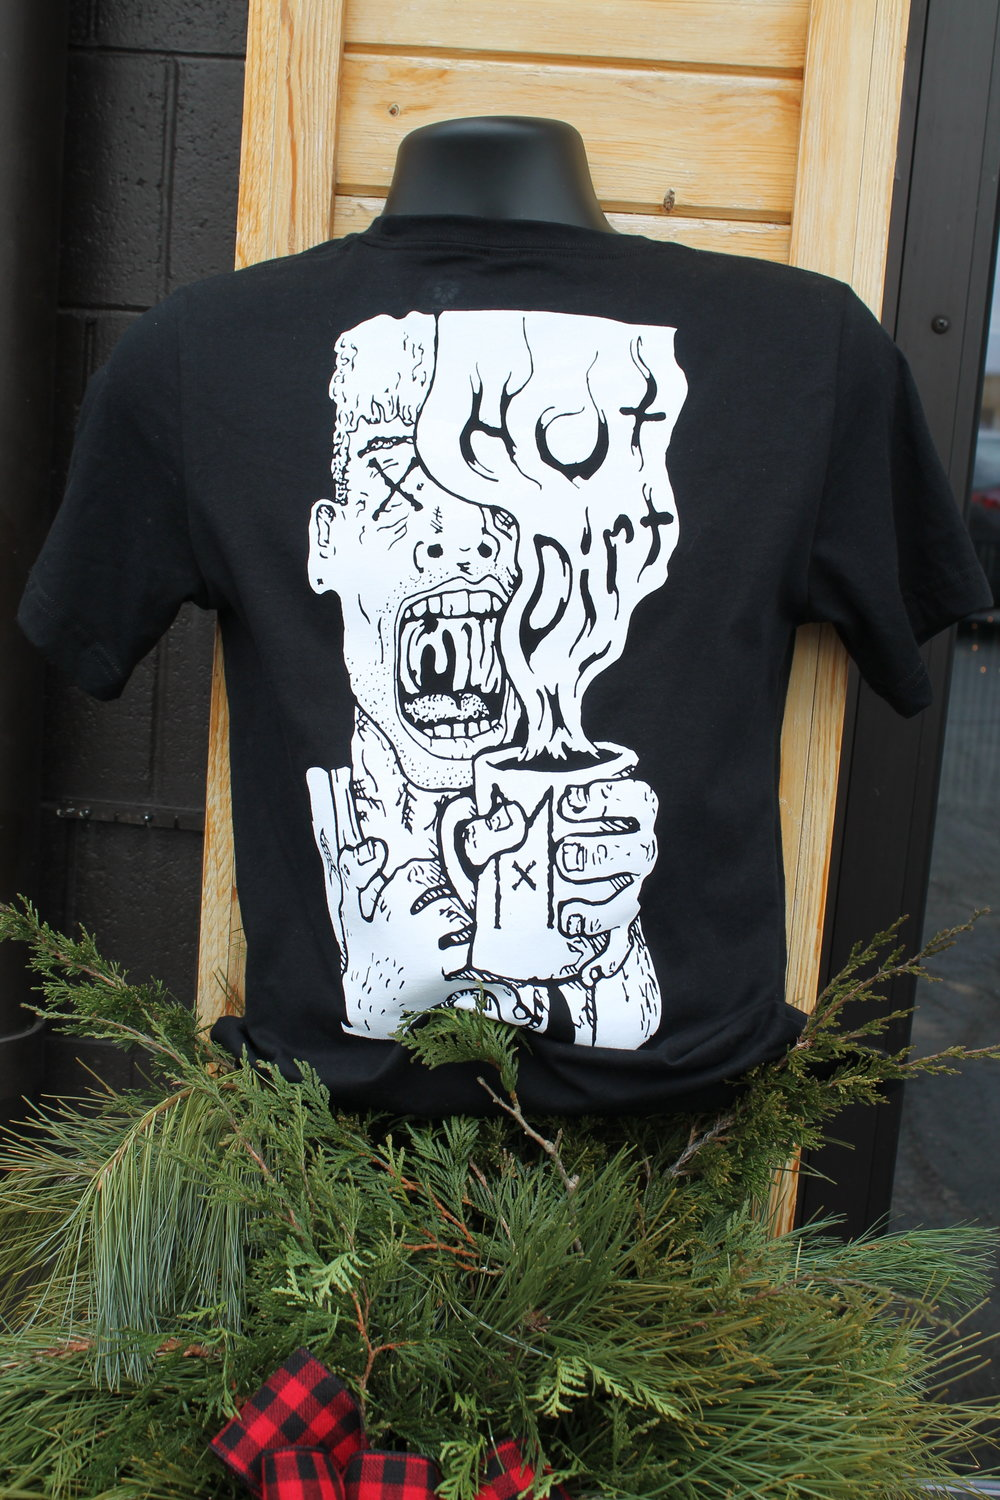 "Steven Hinrichsen ""Hot Dirt"" Back: Issue 1- $25"